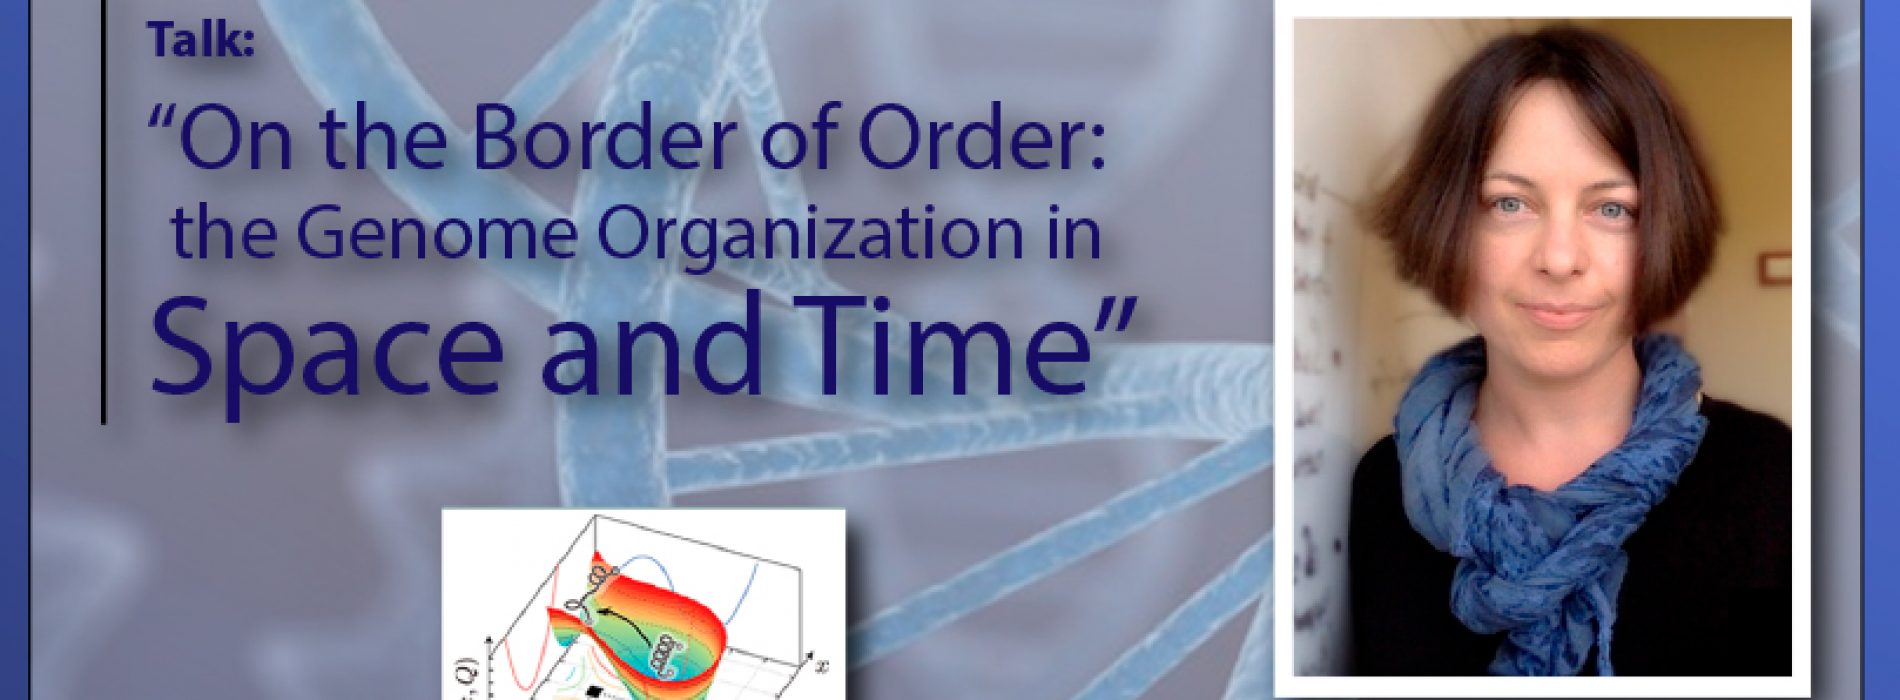 "Talk: ""On the Border of Order: the Genome Organization in Space and Time"""